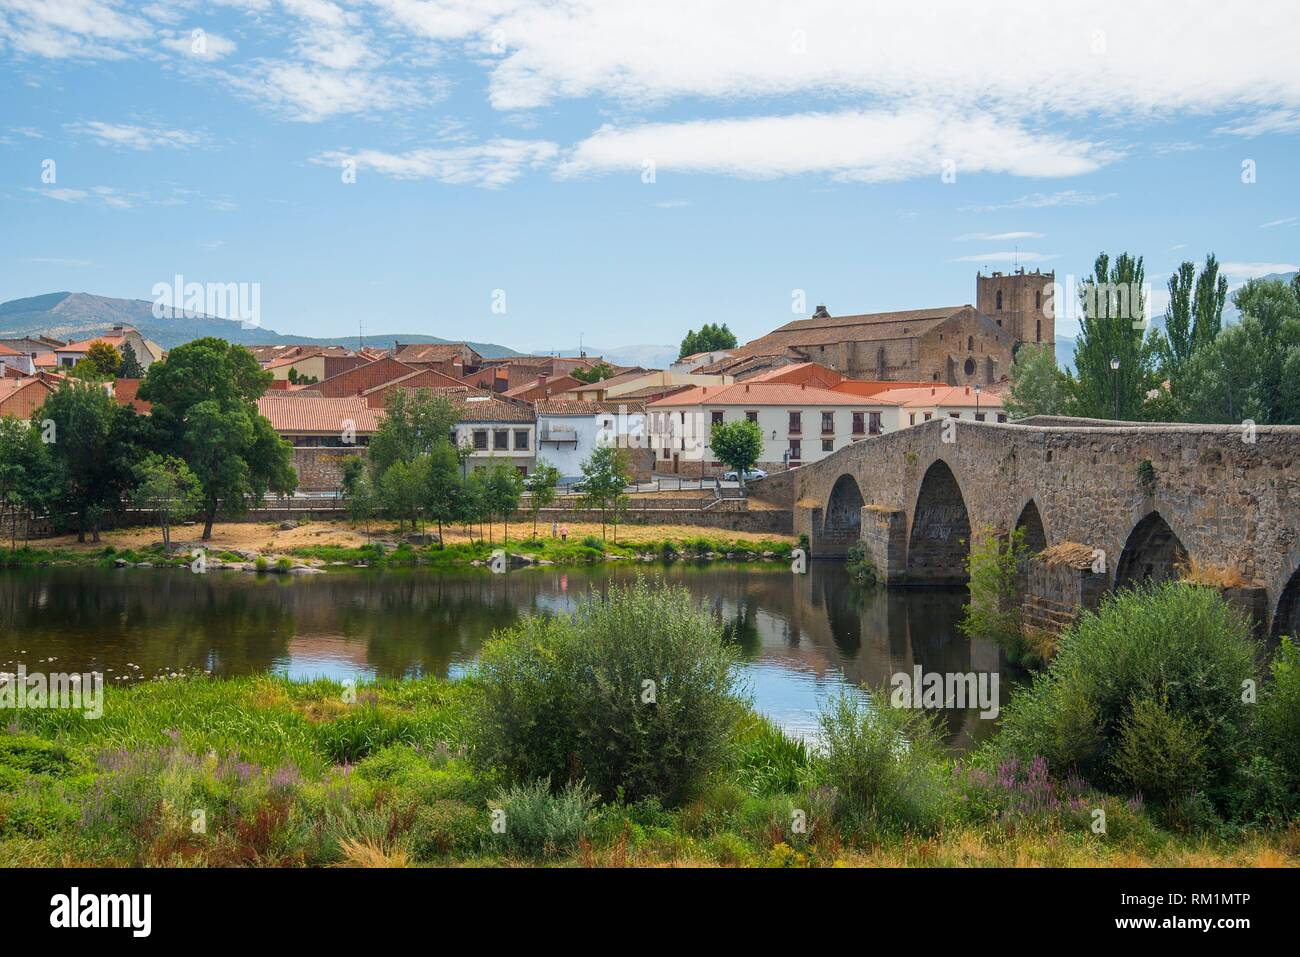 River Tormes Medieval Bridge And Overview Of The Village El Barco